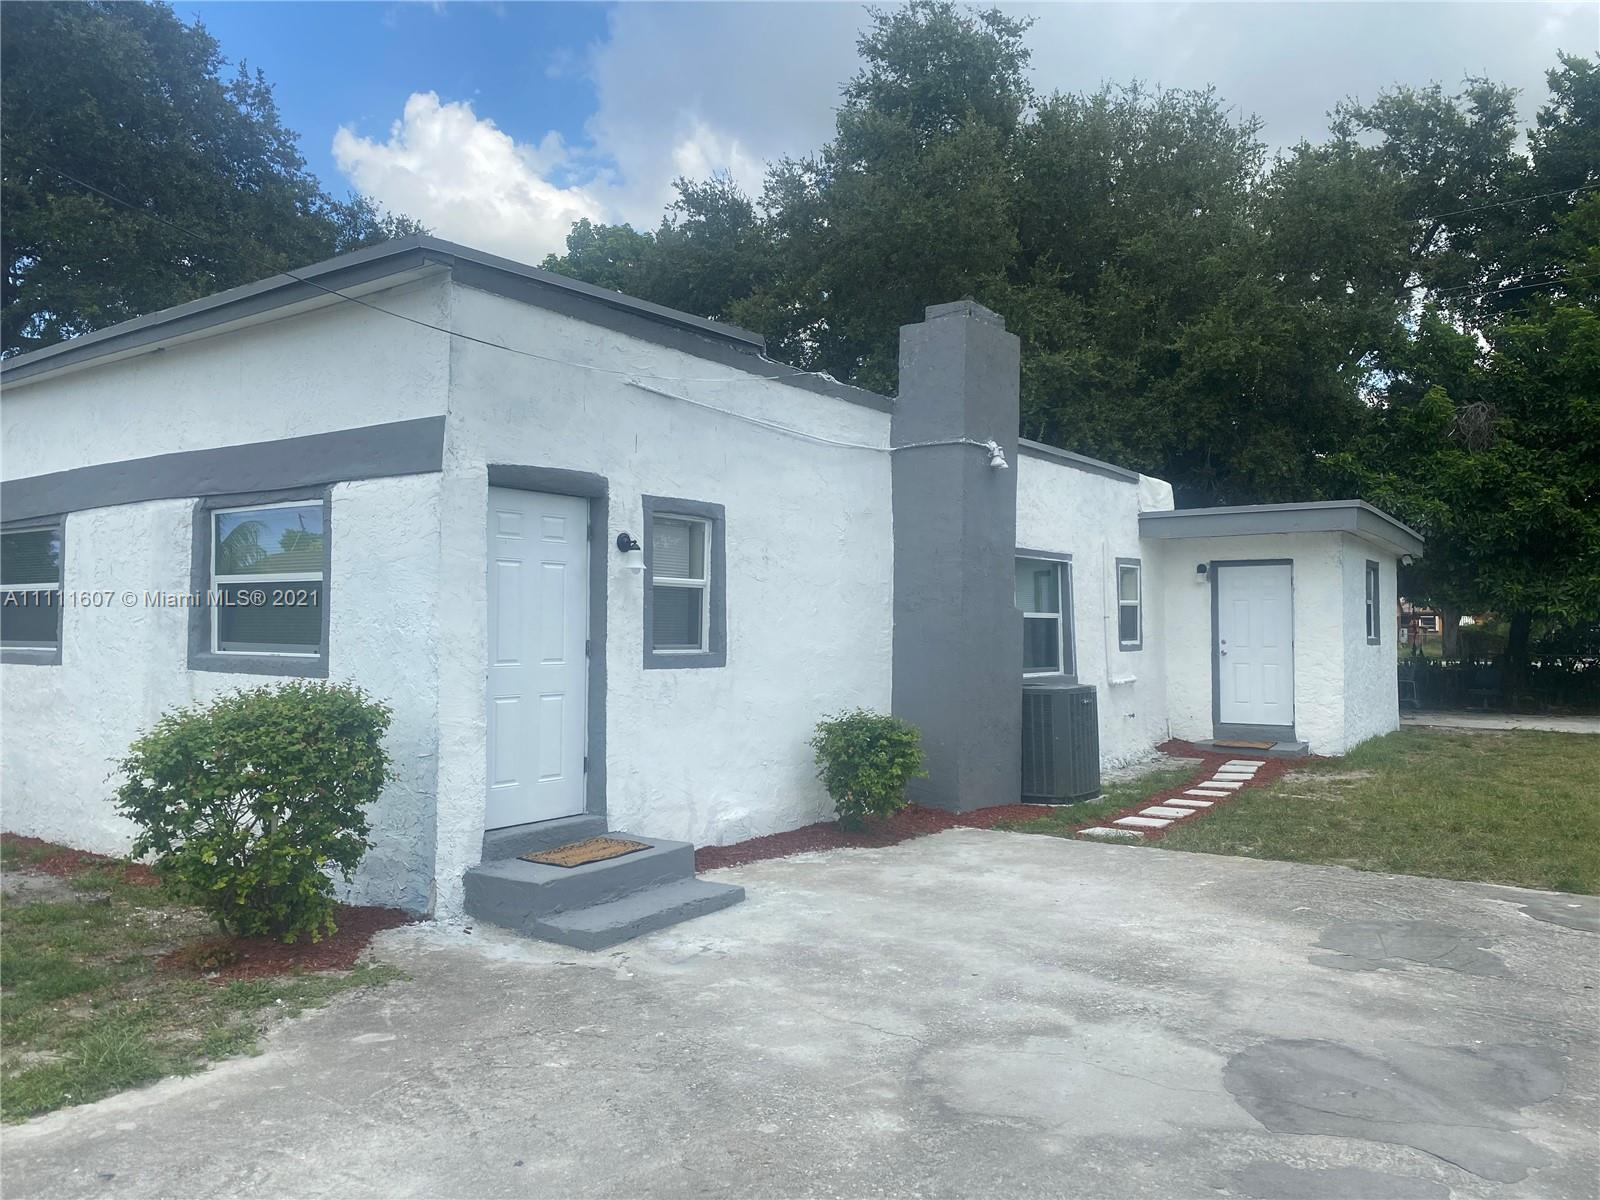 Single Family Home,For Sale,2109 NW 82nd St, Miami, Florida 33147,Brickell,realty,broker,condos near me